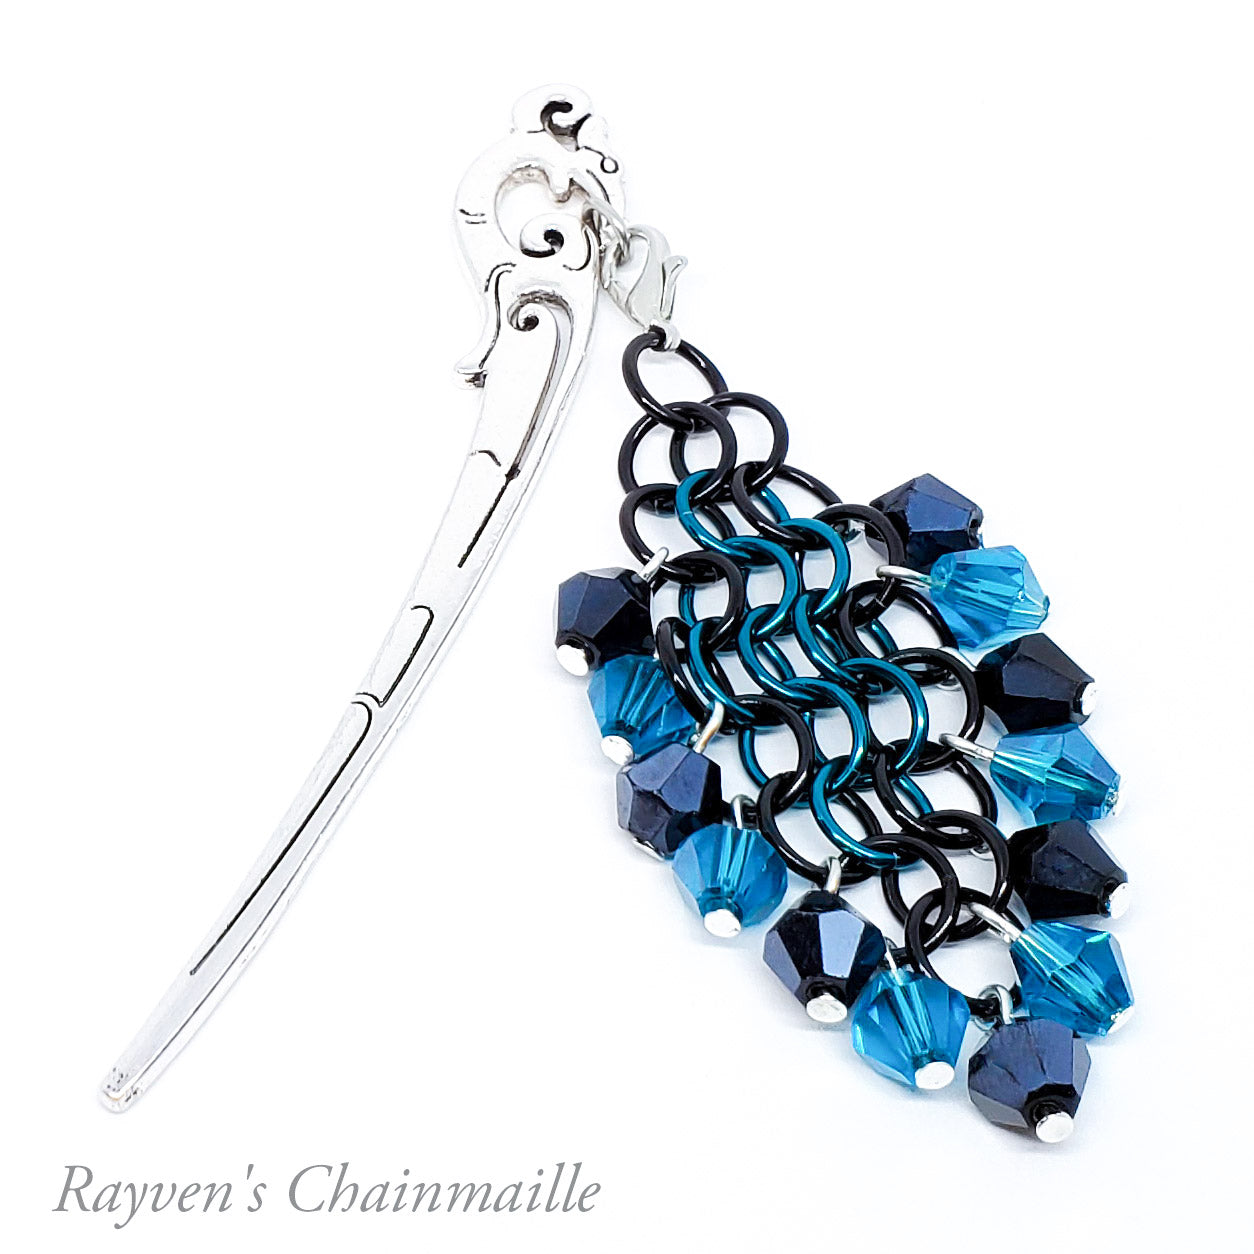 Rayven's Chainmaille| Hair Stick Rainbow Chainmail Decorative Dangle Hair Accessory